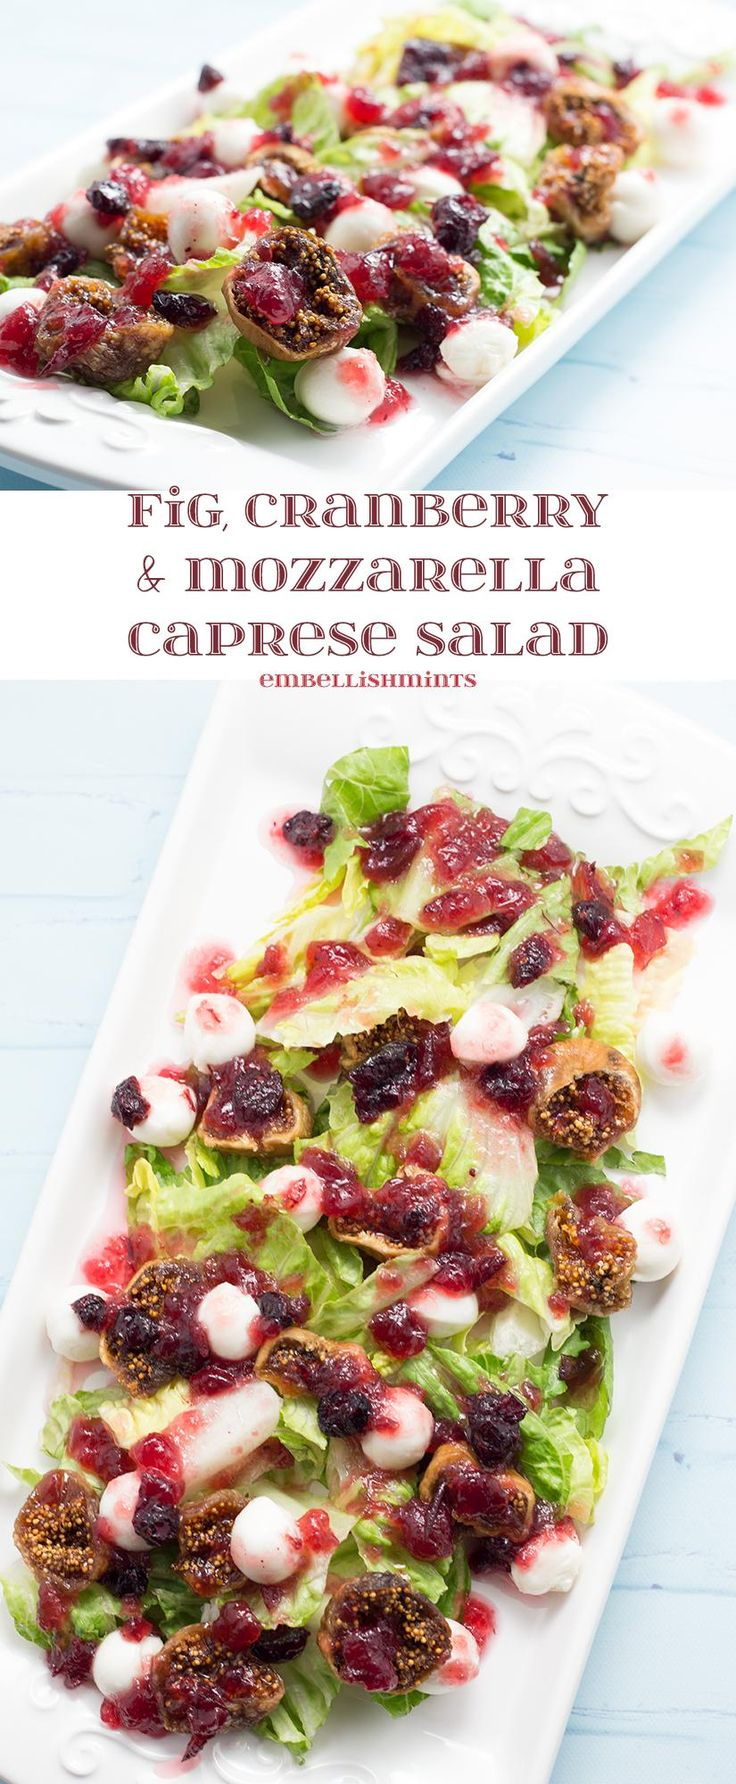 Fig Cranberry Mozzarella Caprese Salad will make a huge statement at your next party. Less than 5 ingredients, made in less than 30 minutes! You'll love it! www.Embellishmints.com